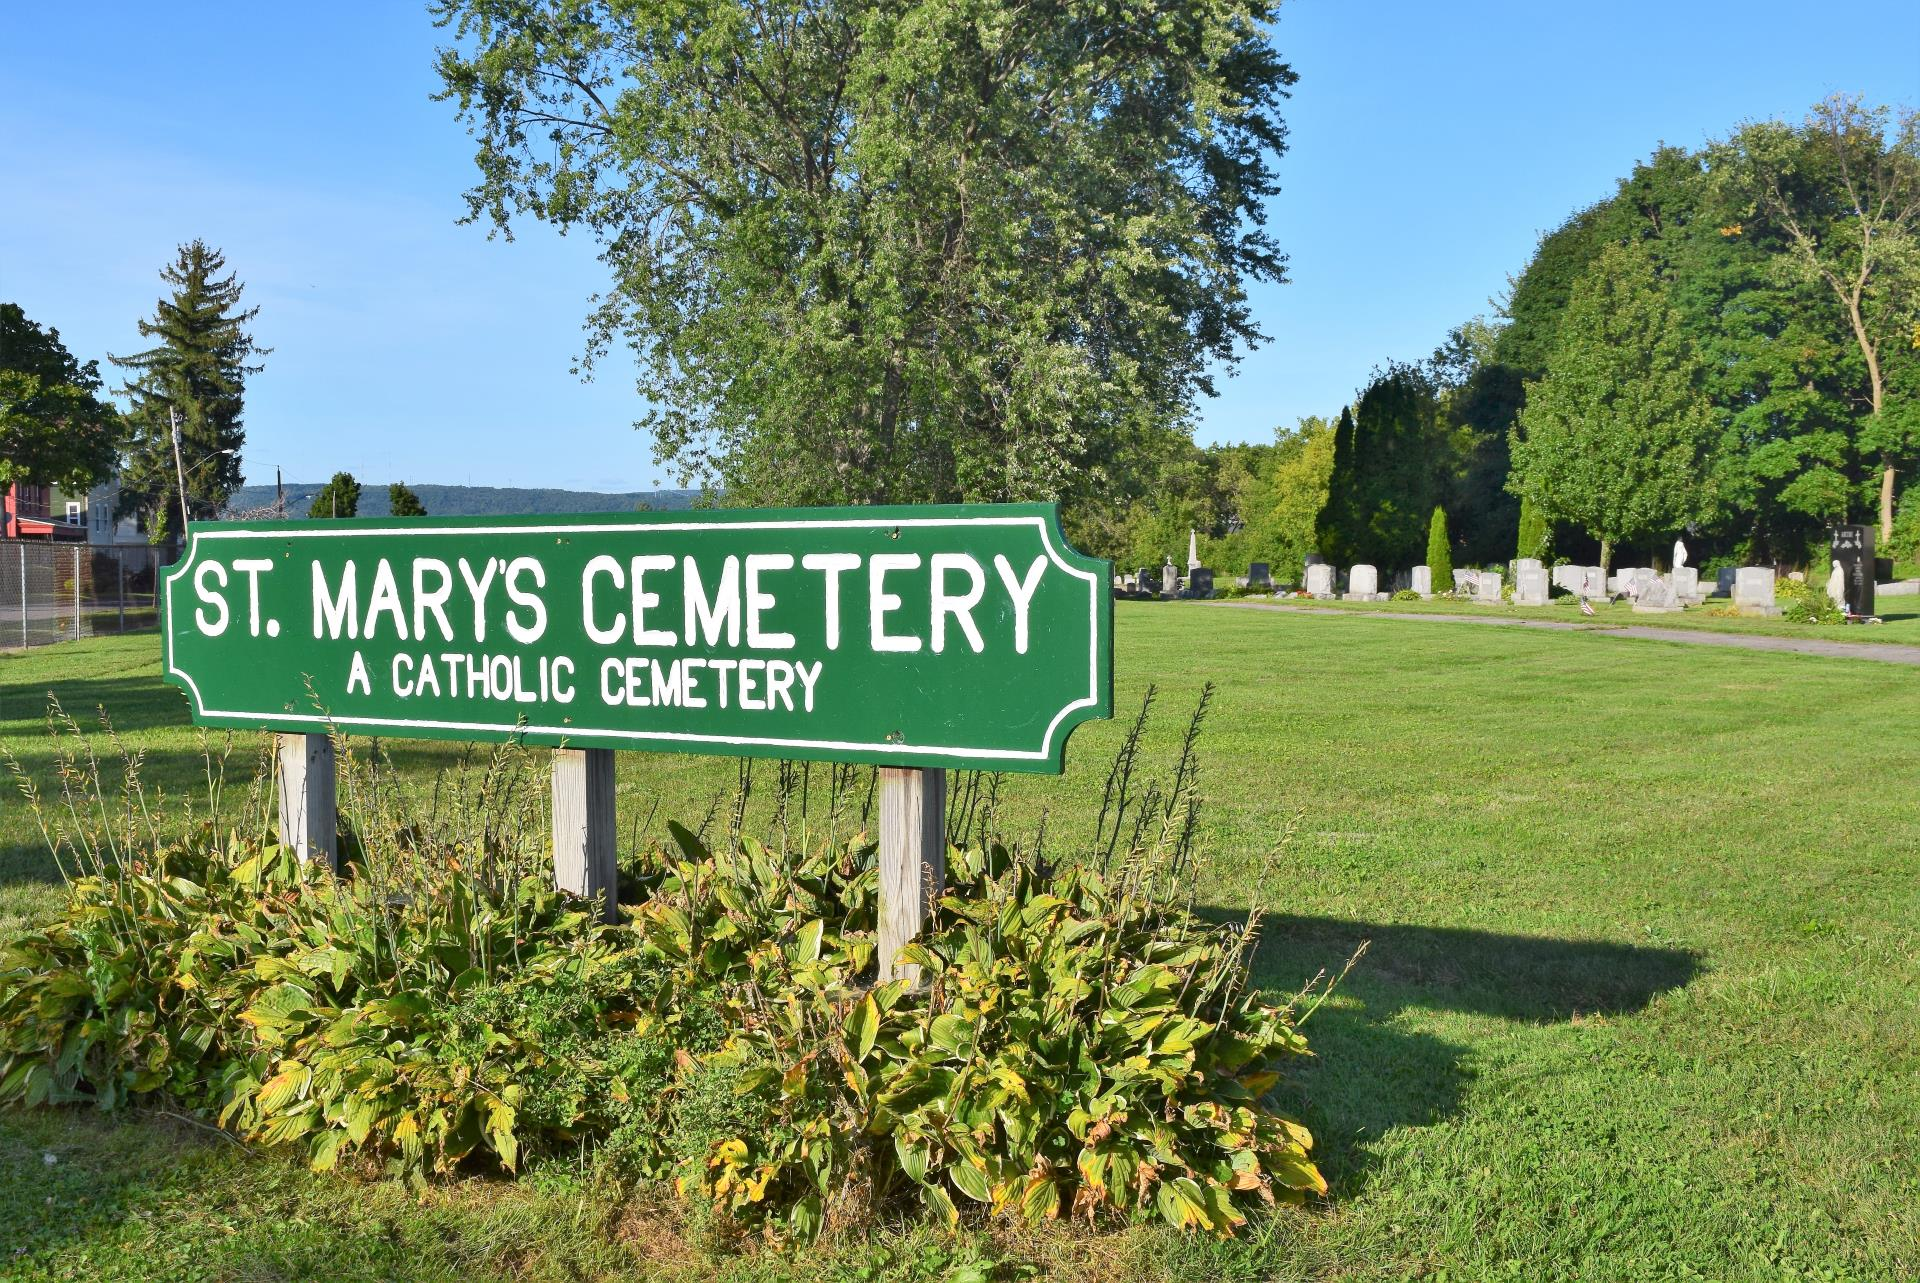 Entrance sign at St. Mary's Cemetery